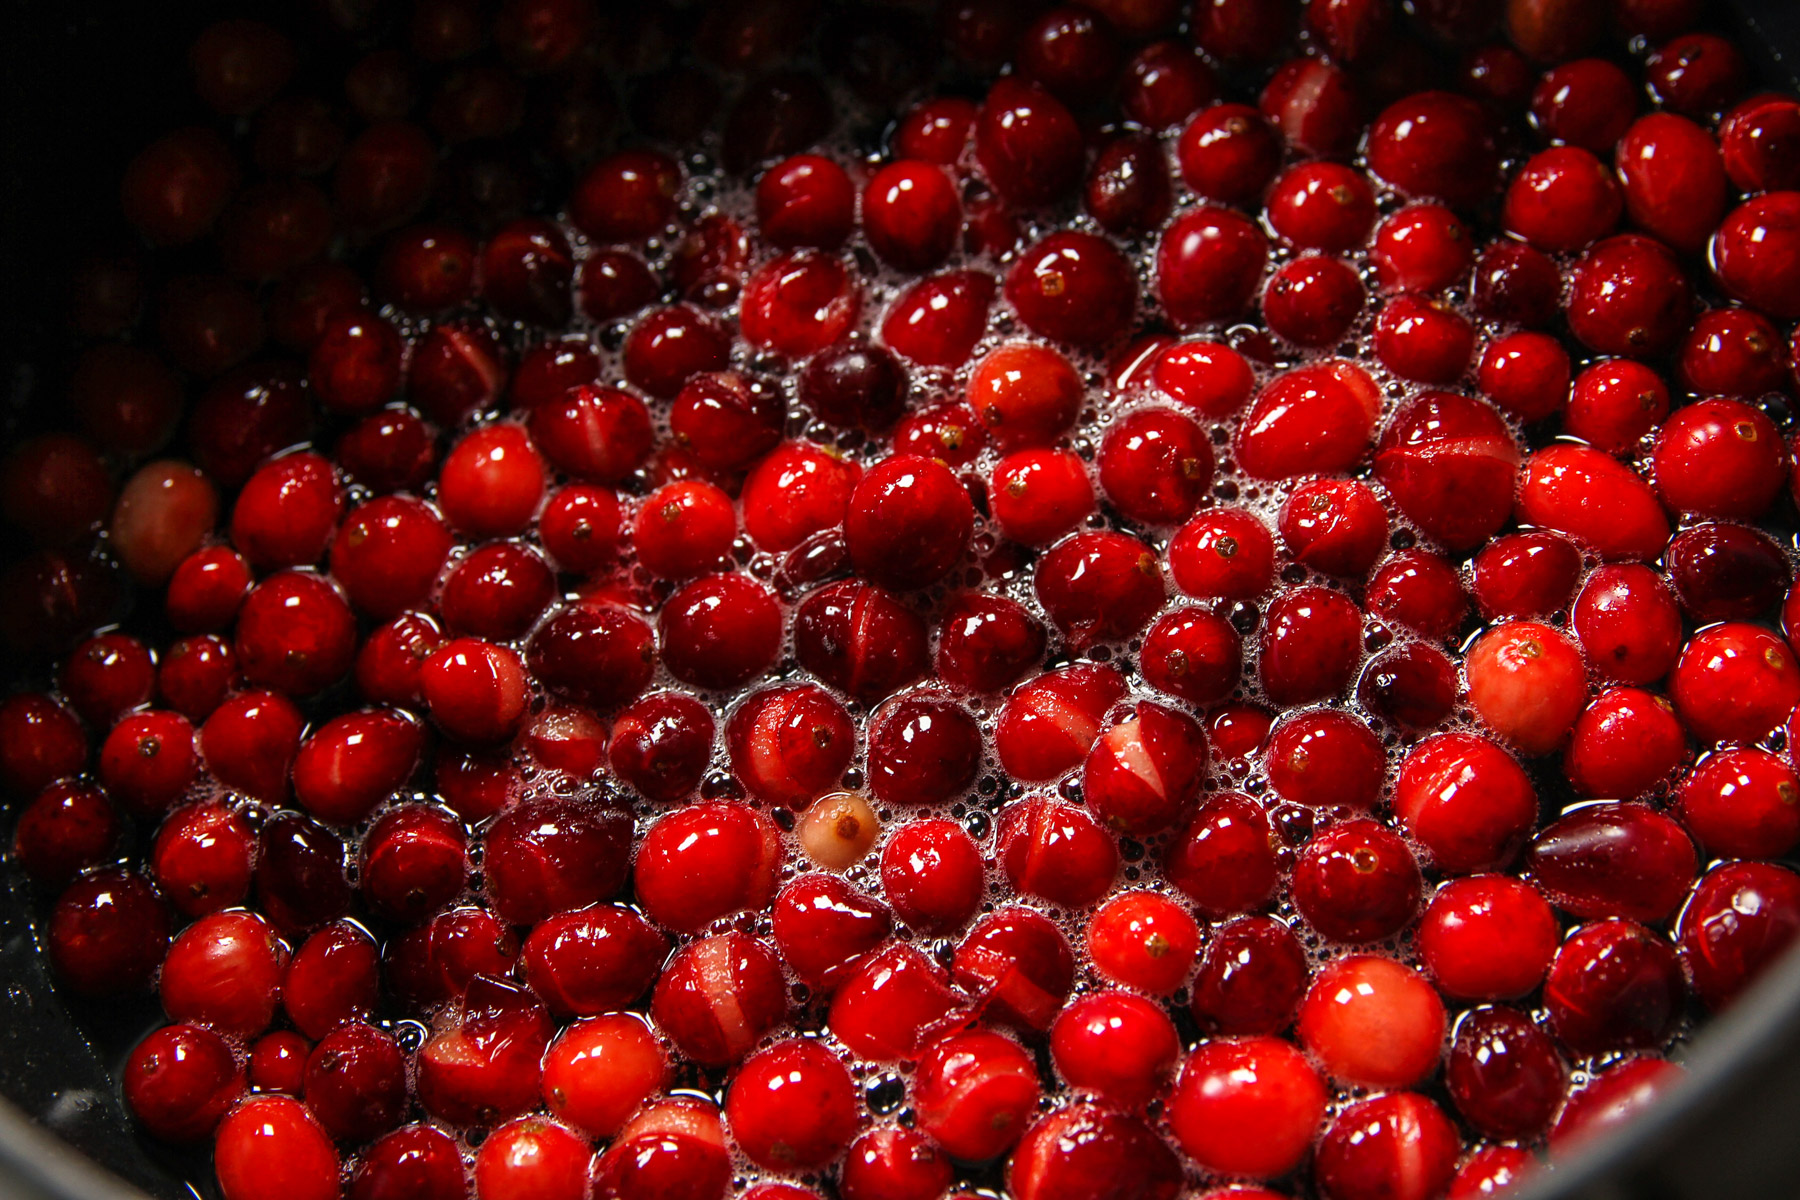 Classic cranberry sauce from the back of the bag